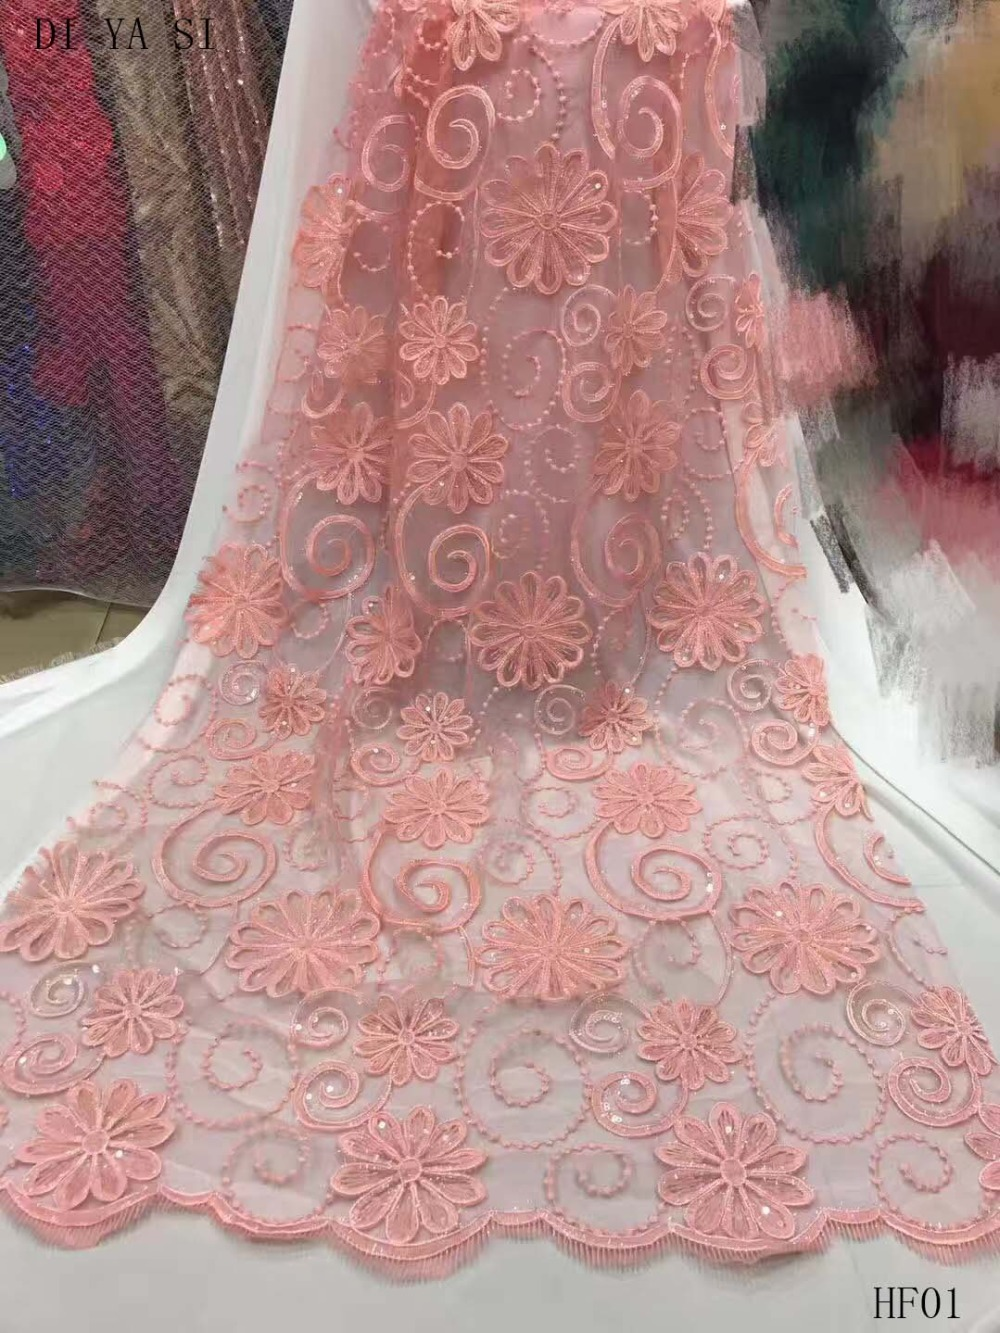 Nigerian Lace Fabric 2018 High Quality Lace Pink Silver Sequin Fabric For Sewing Dress Tulle Lace Fabric HF01